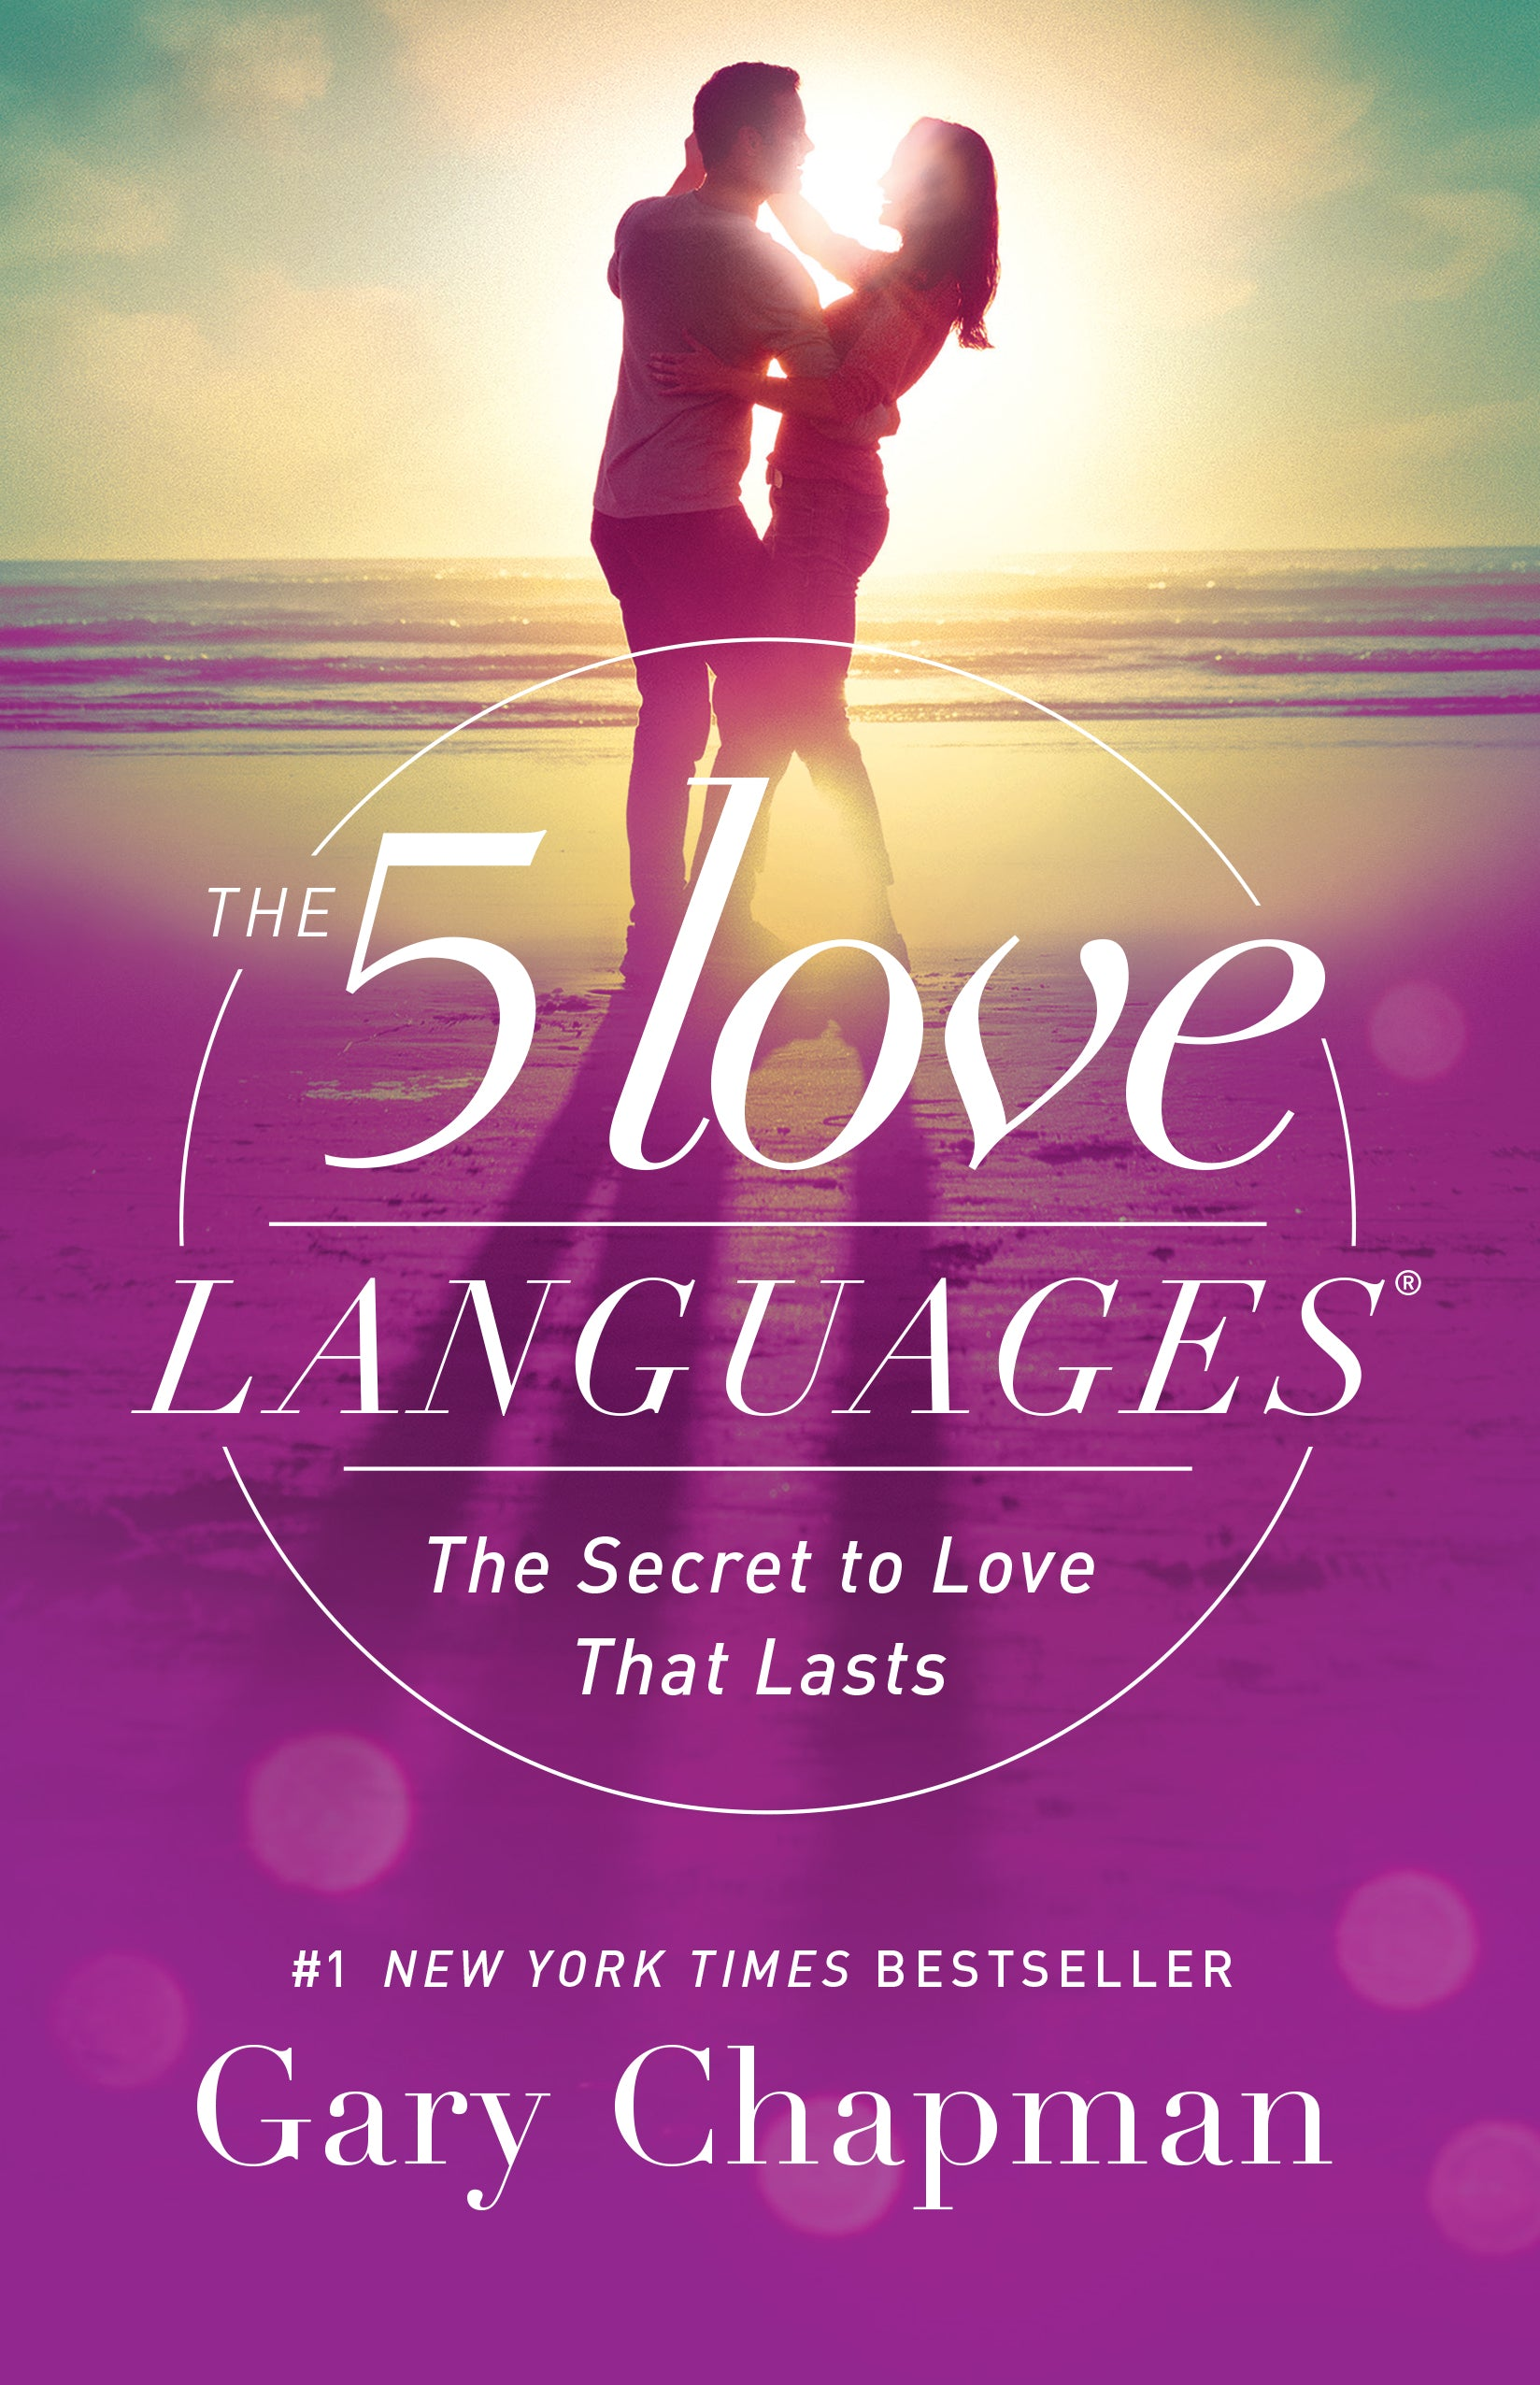 The Five Love Languages; Gary Chapman